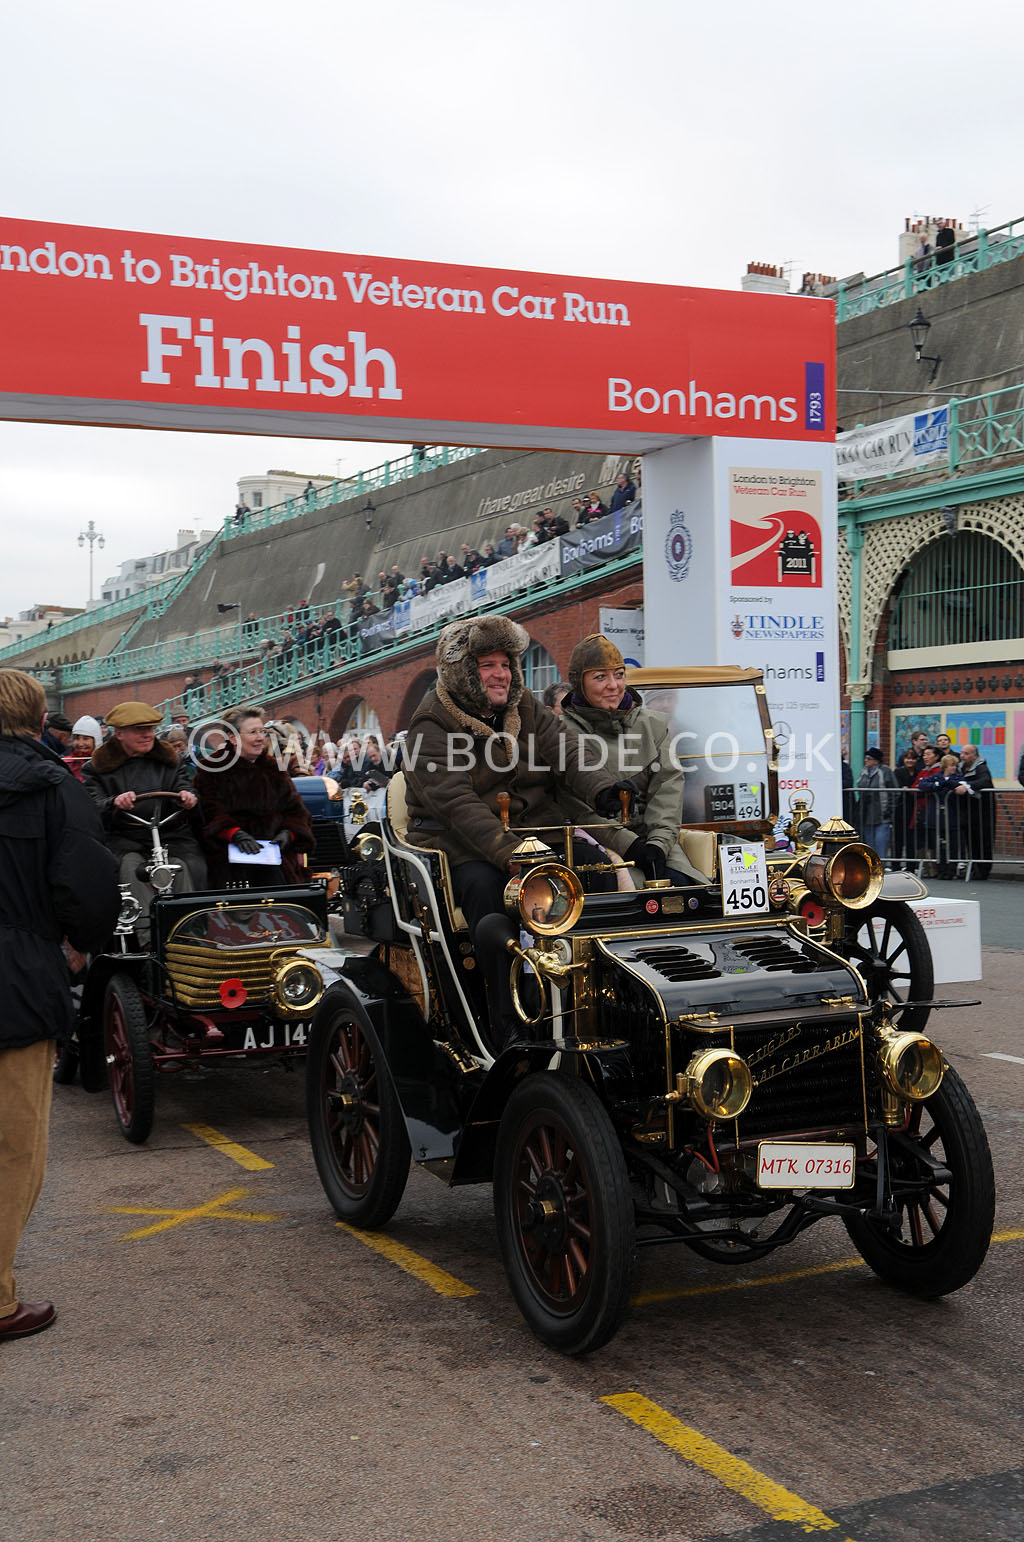 2011-london-to-brighton-veteran-car-run-9319